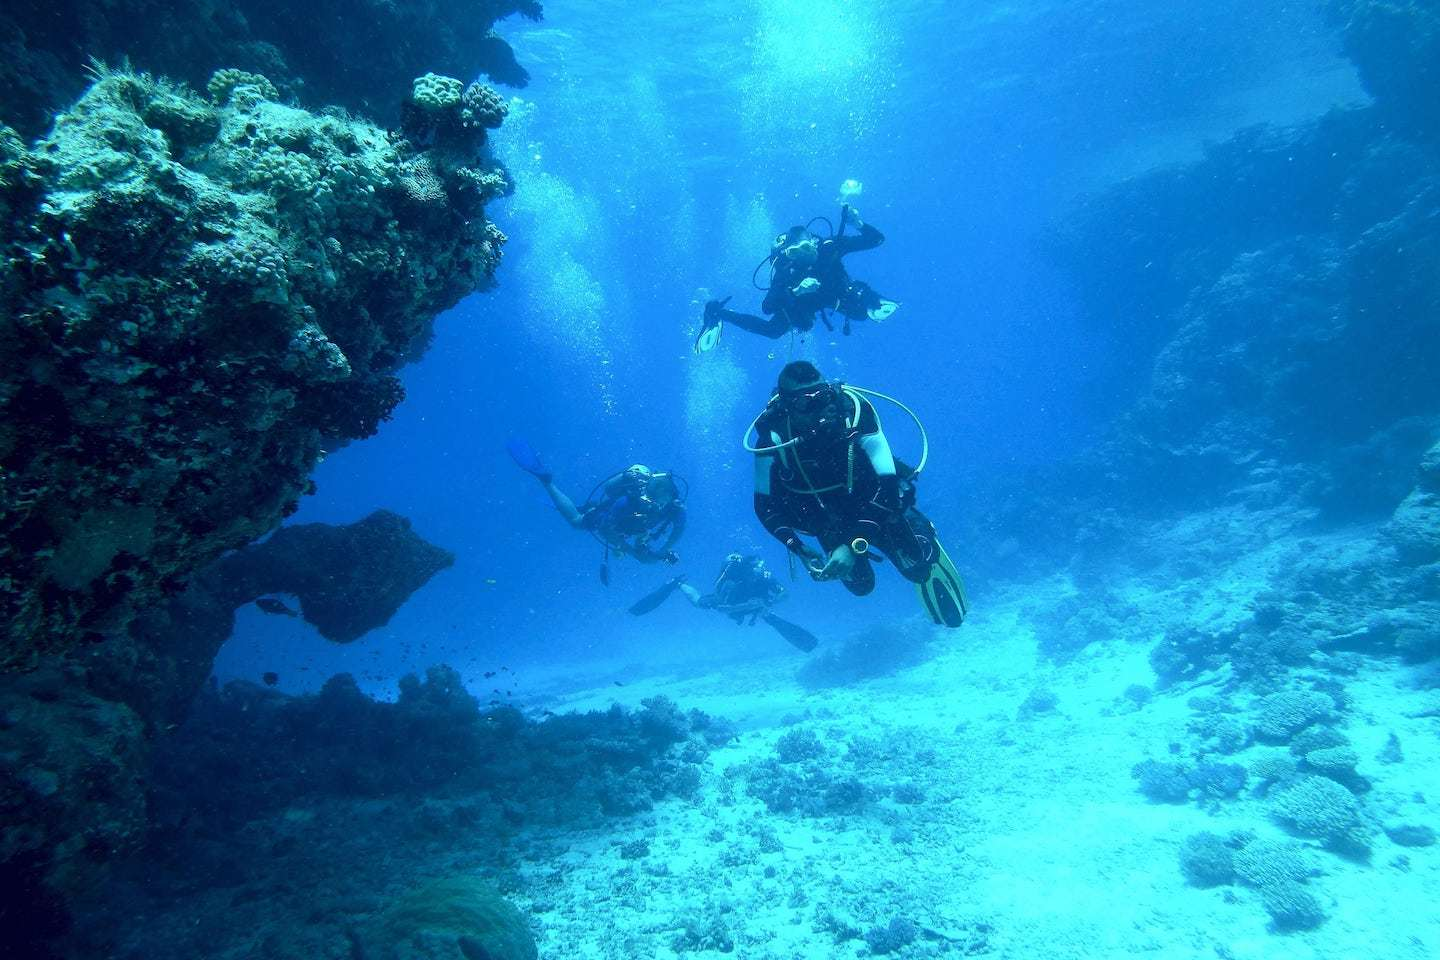 Scuba divers in deep water